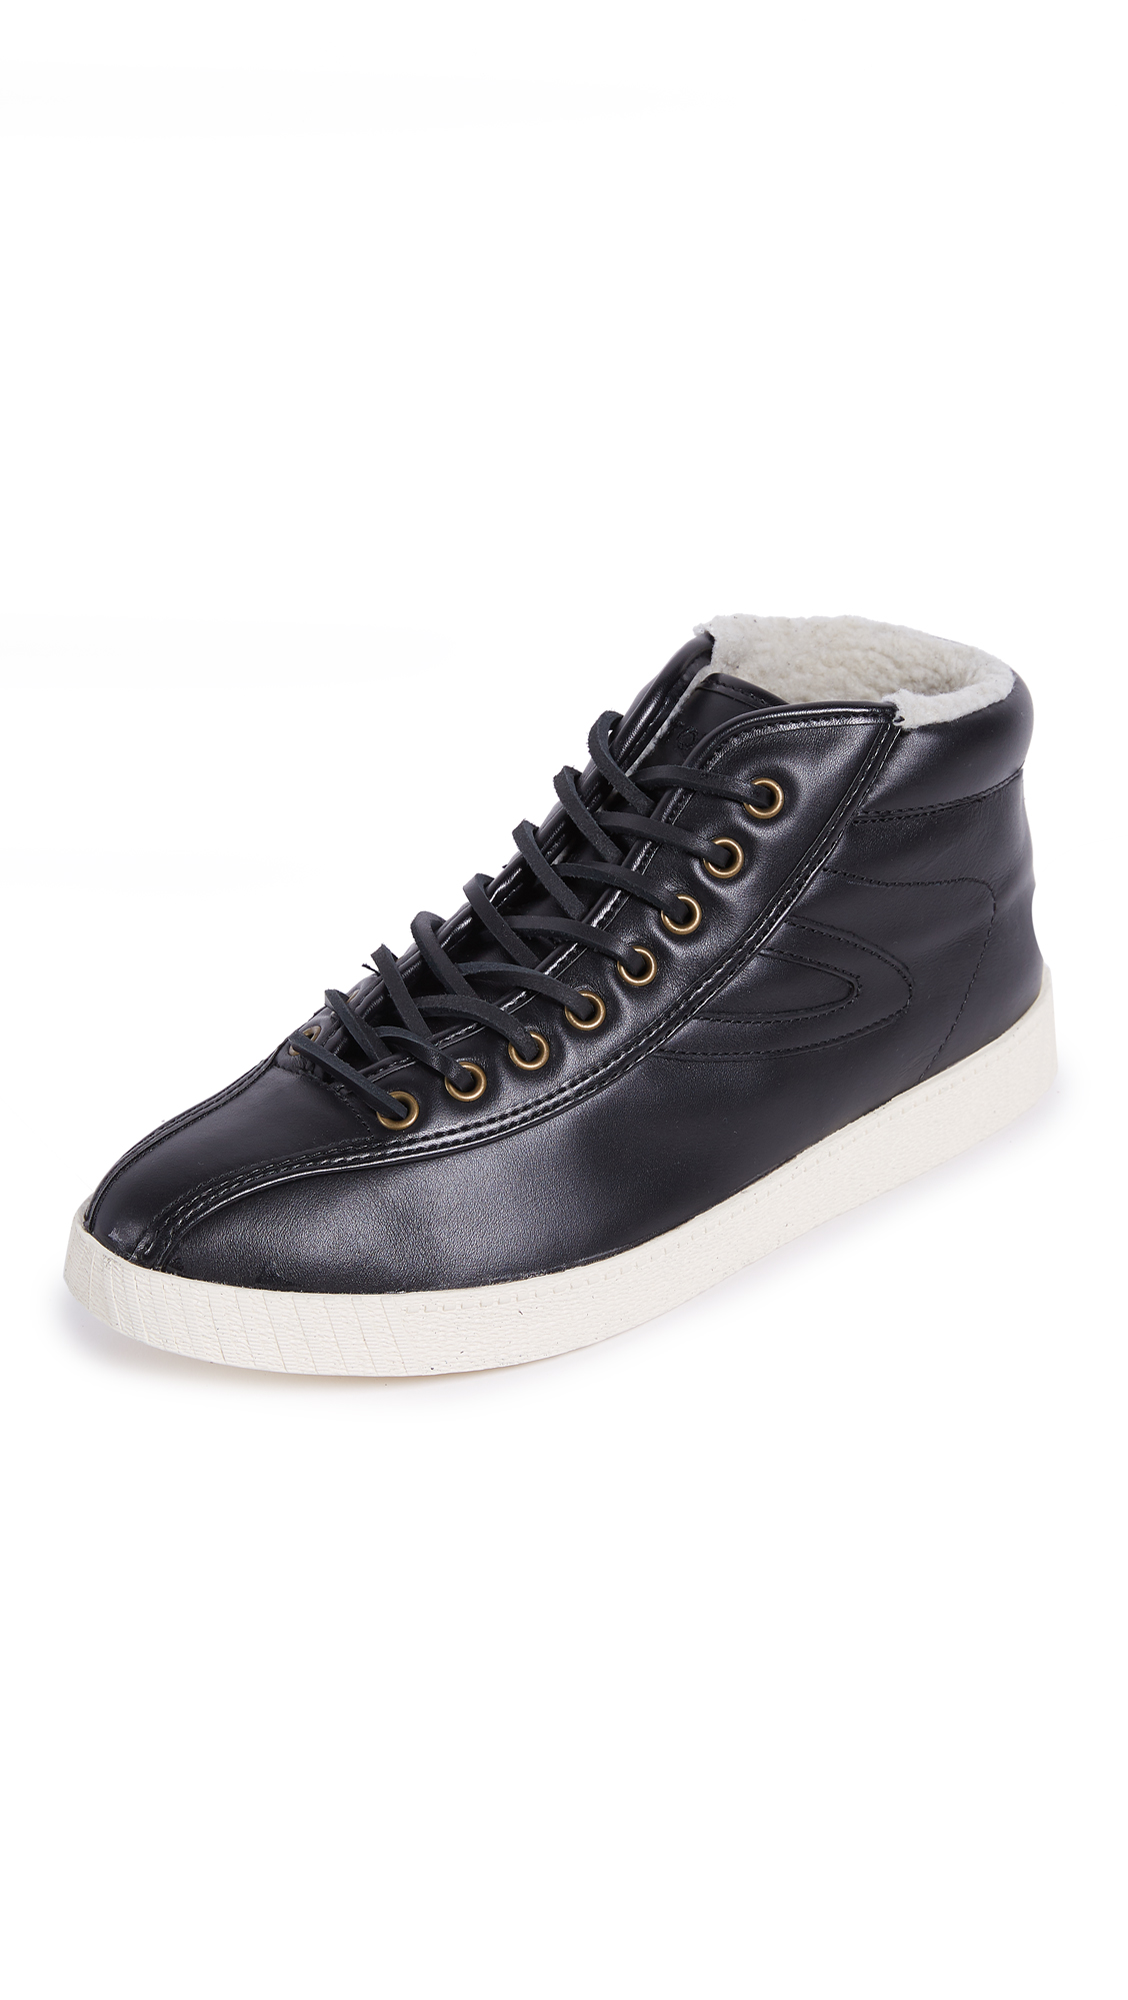 Tretorn Nylite High Leather Sneakers